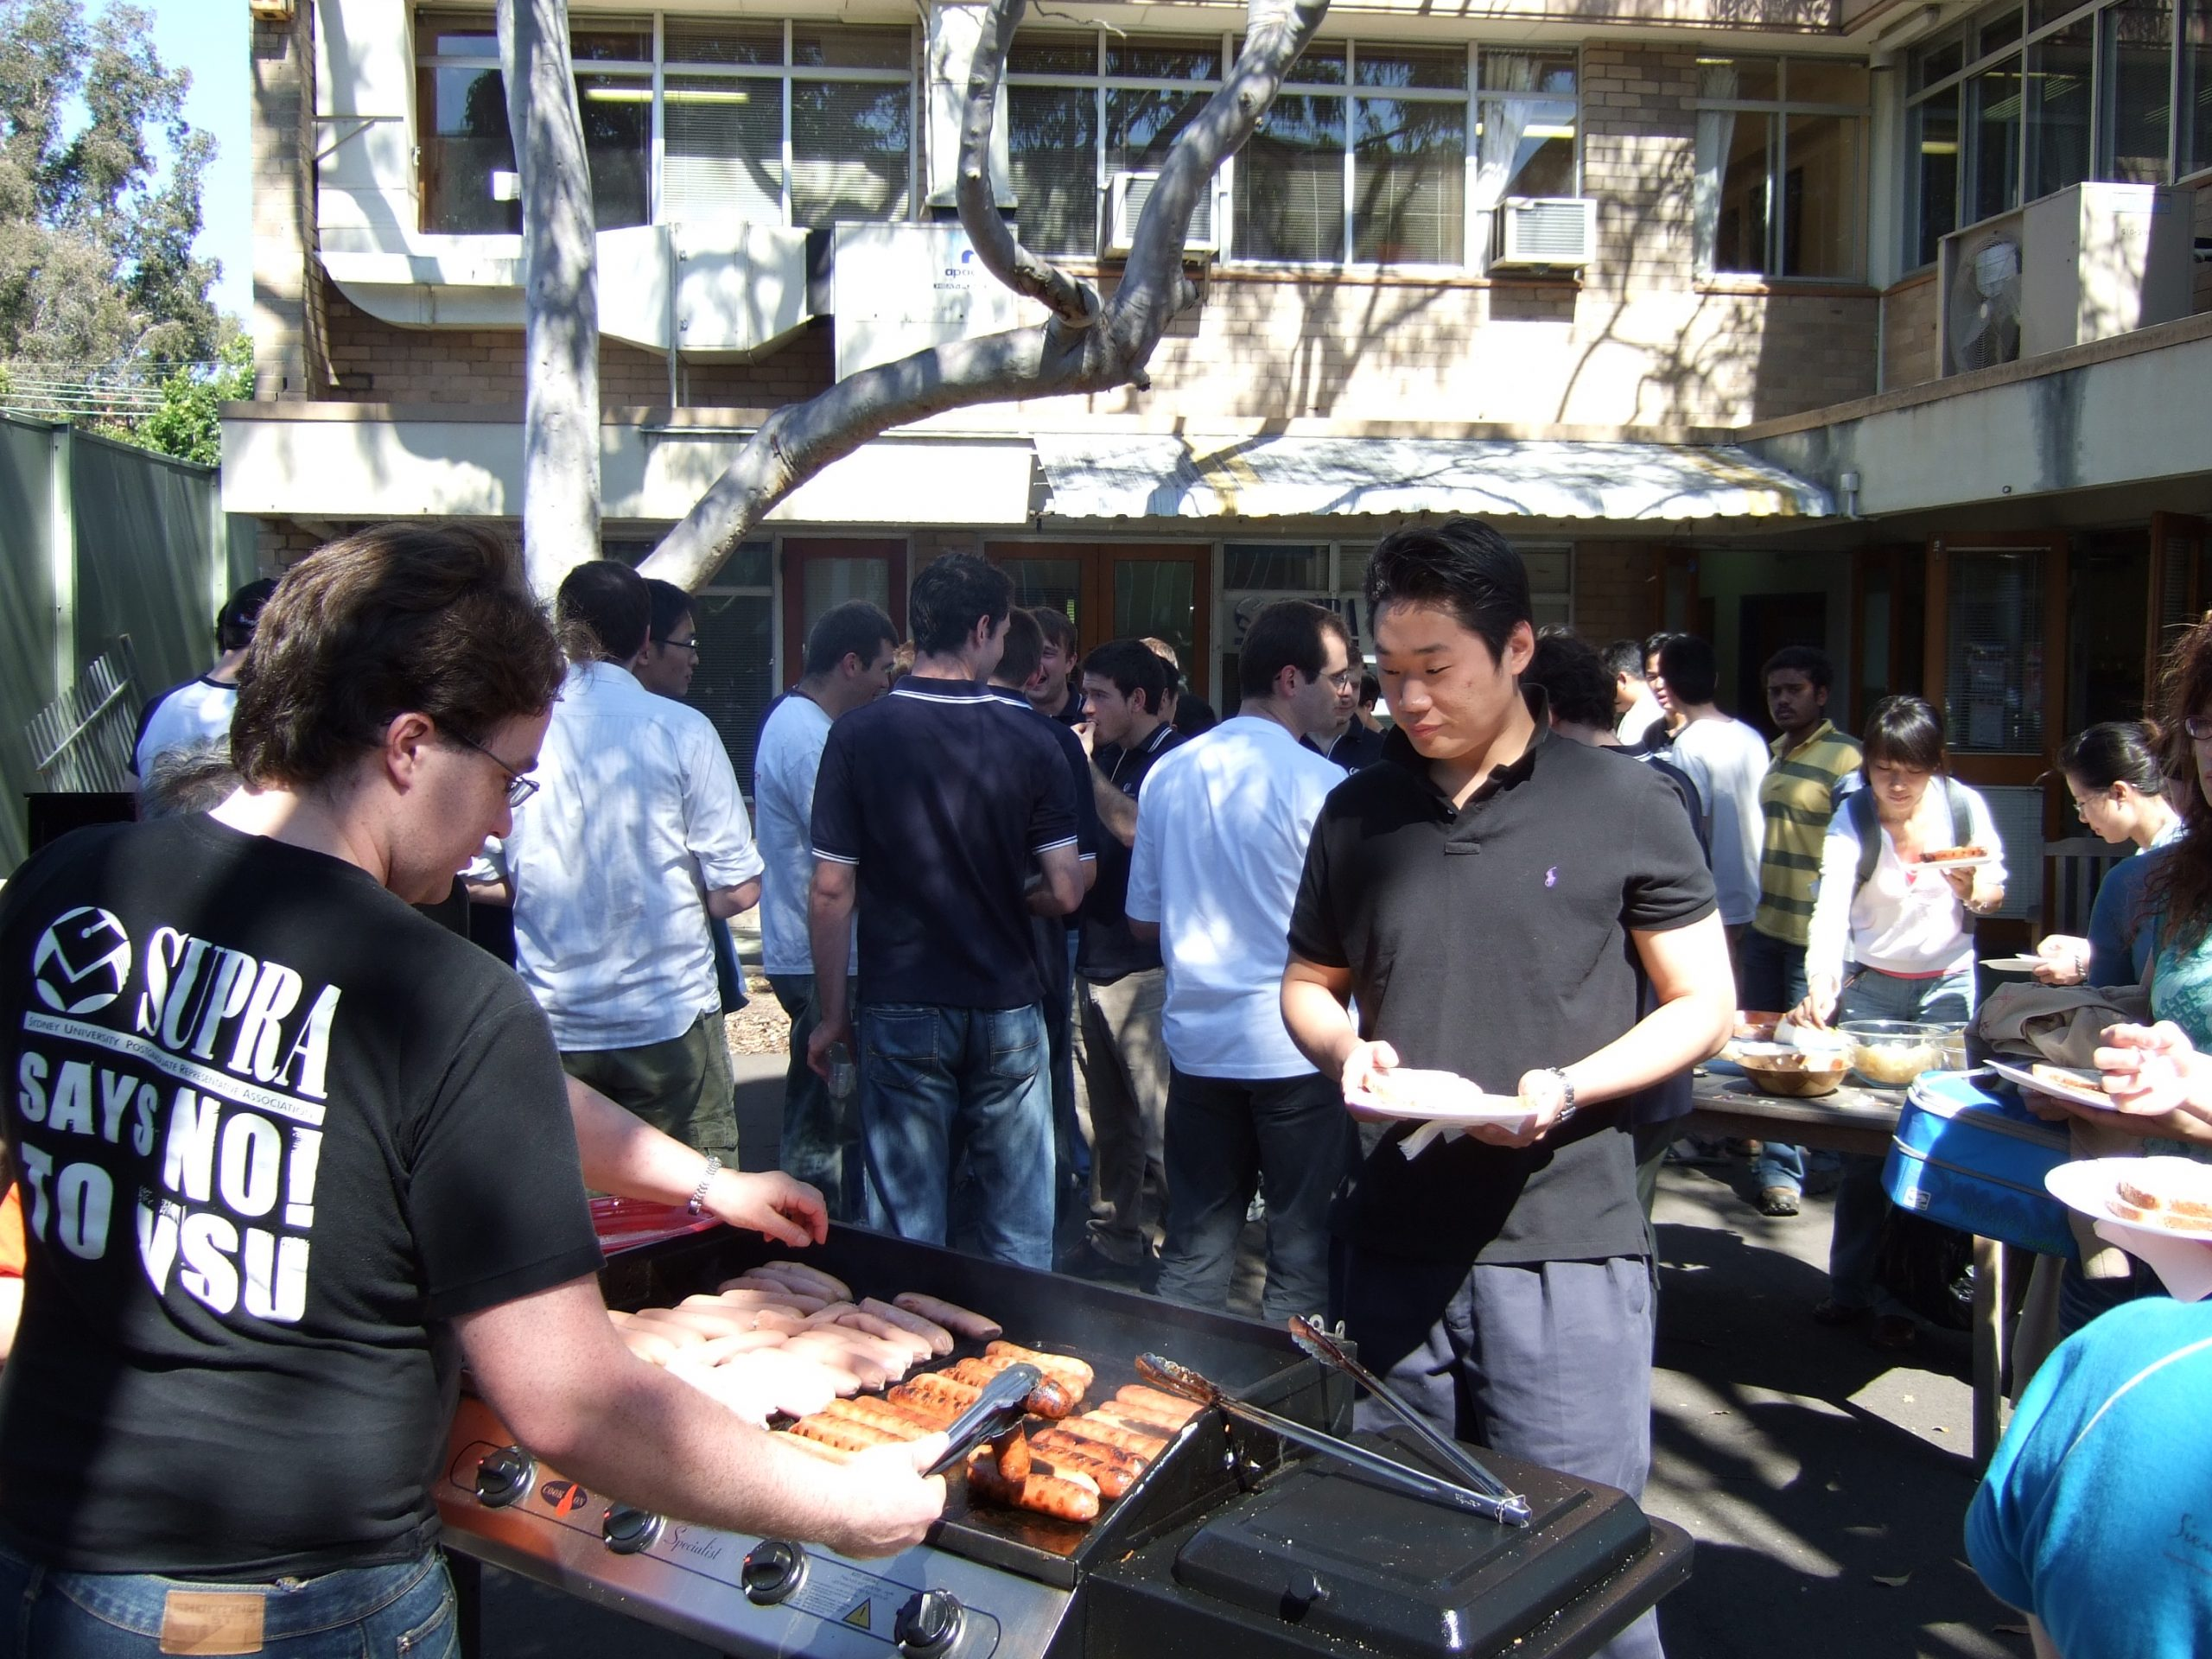 2006 SUPRA BBQ say no to VSU tshirt